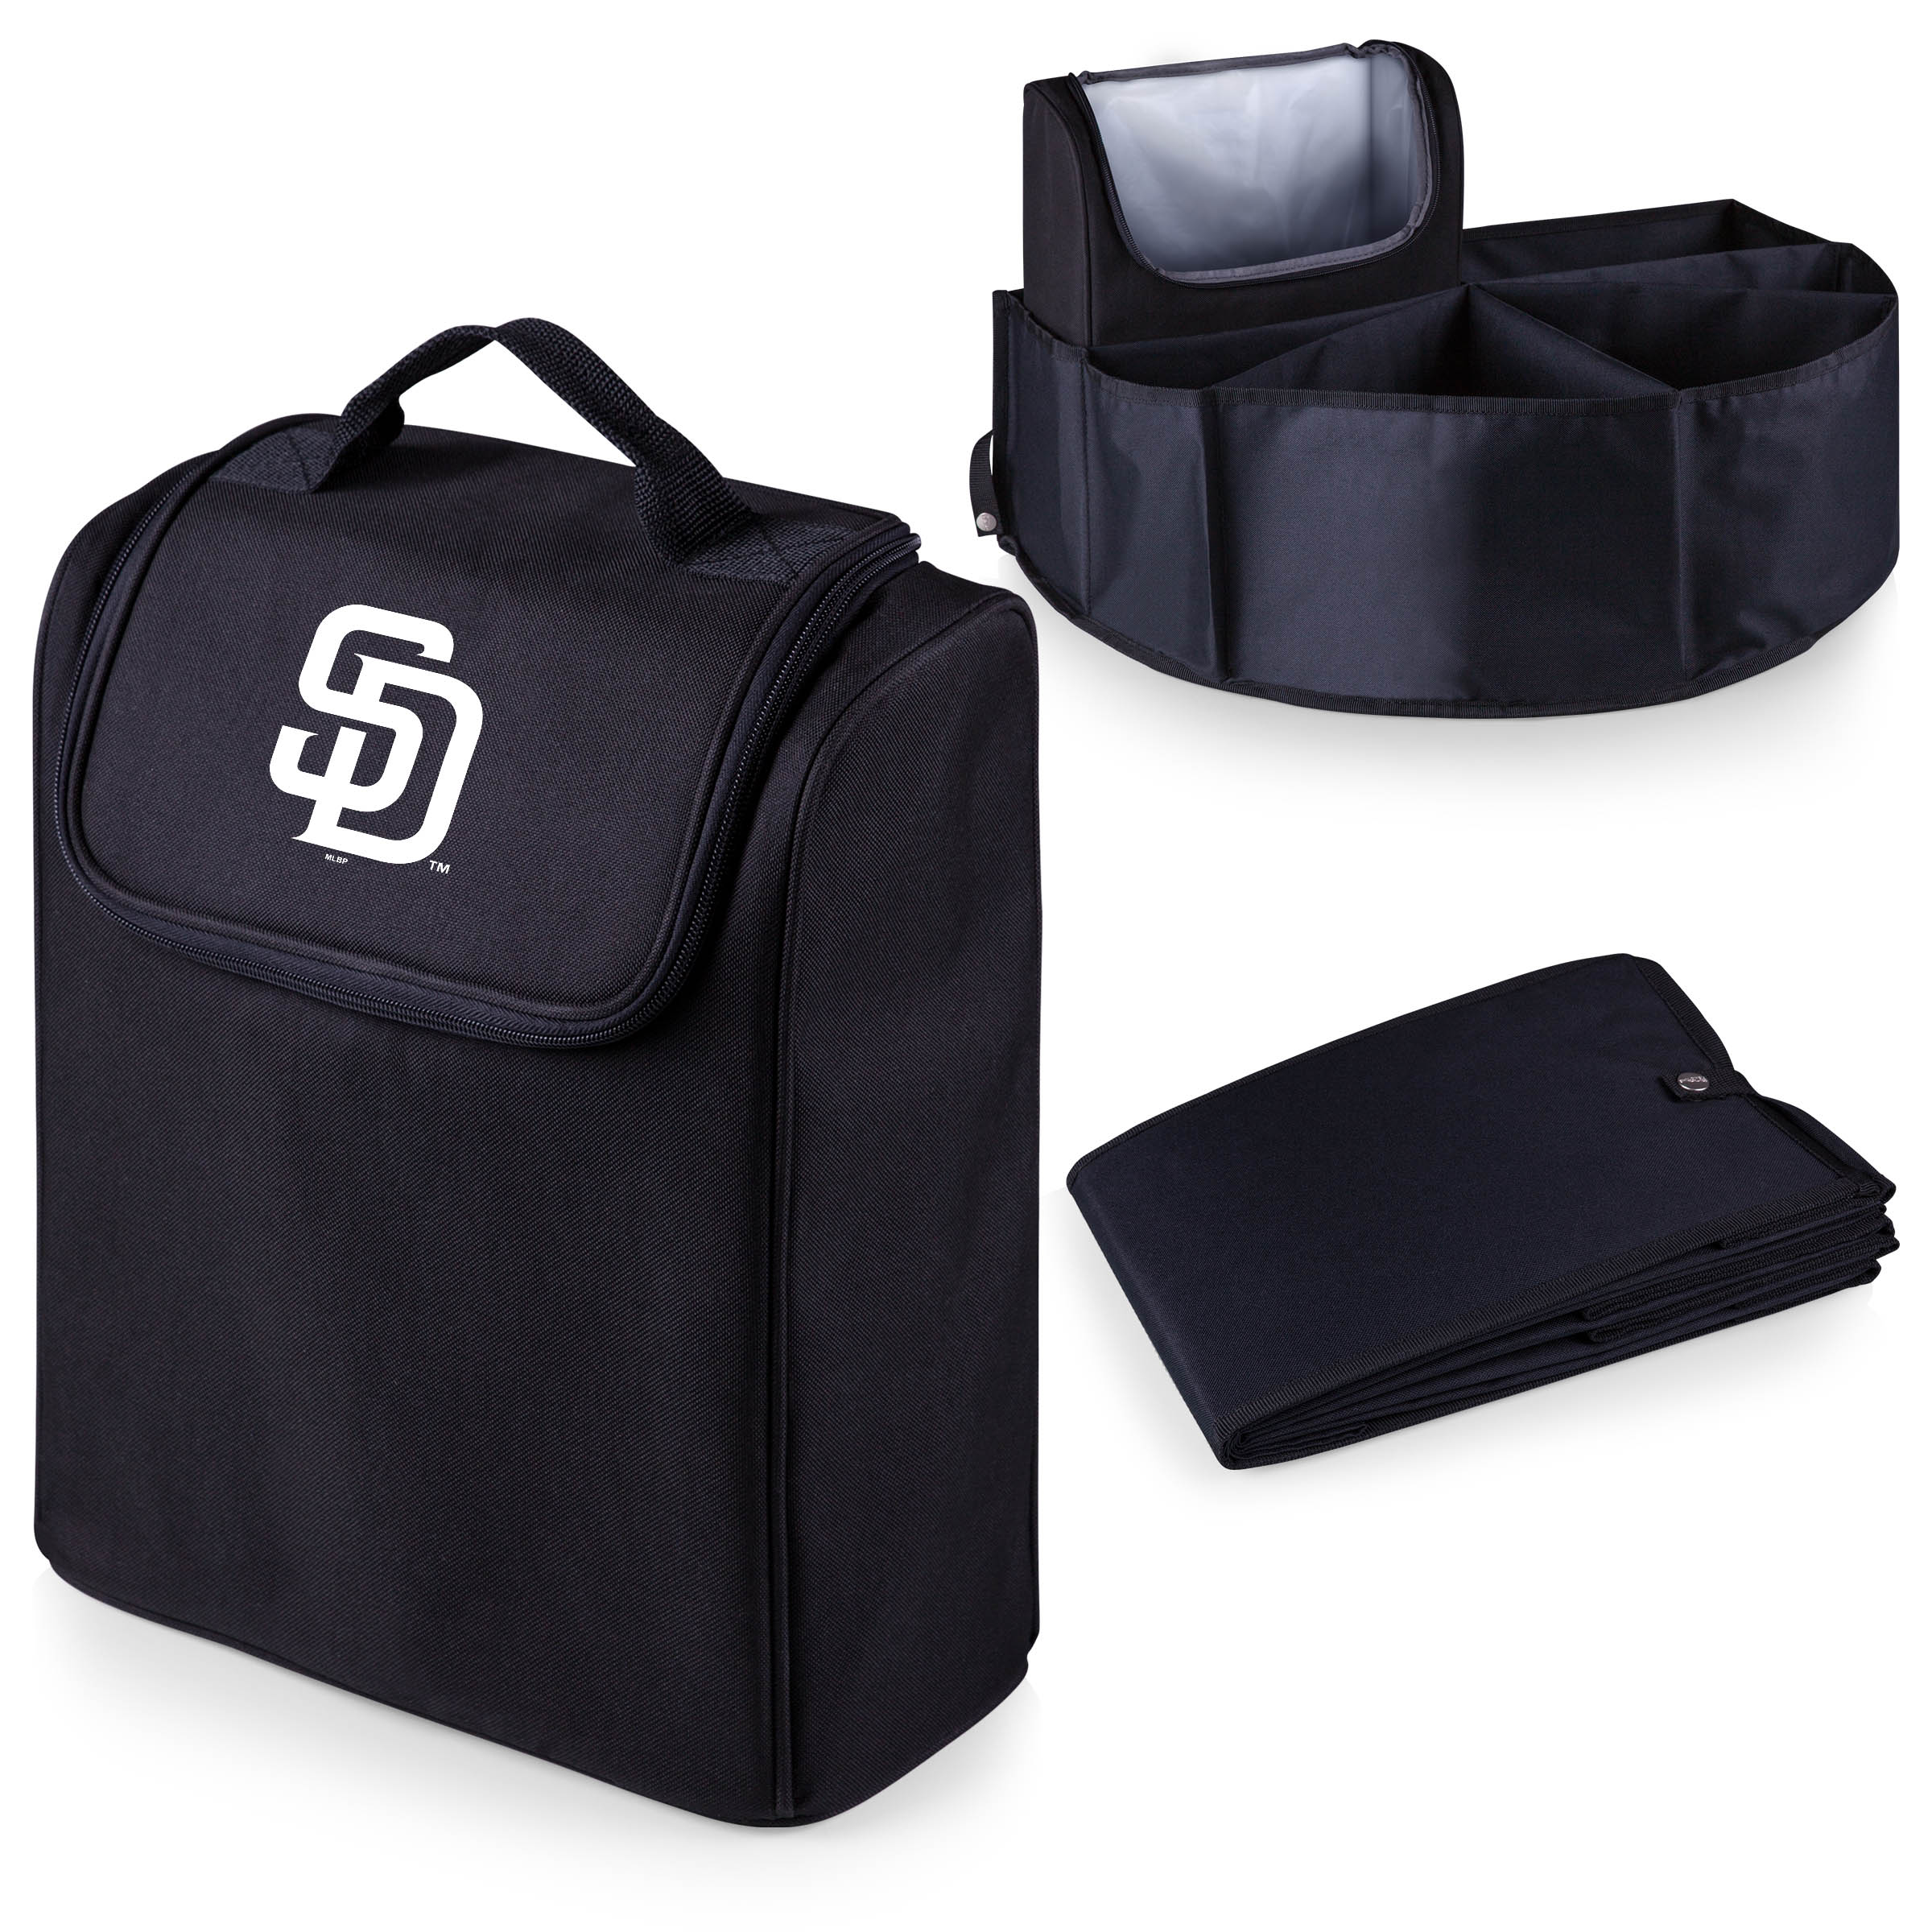 San Diego Padres Trunk Boss Organizer with Cooler - Black - No Size